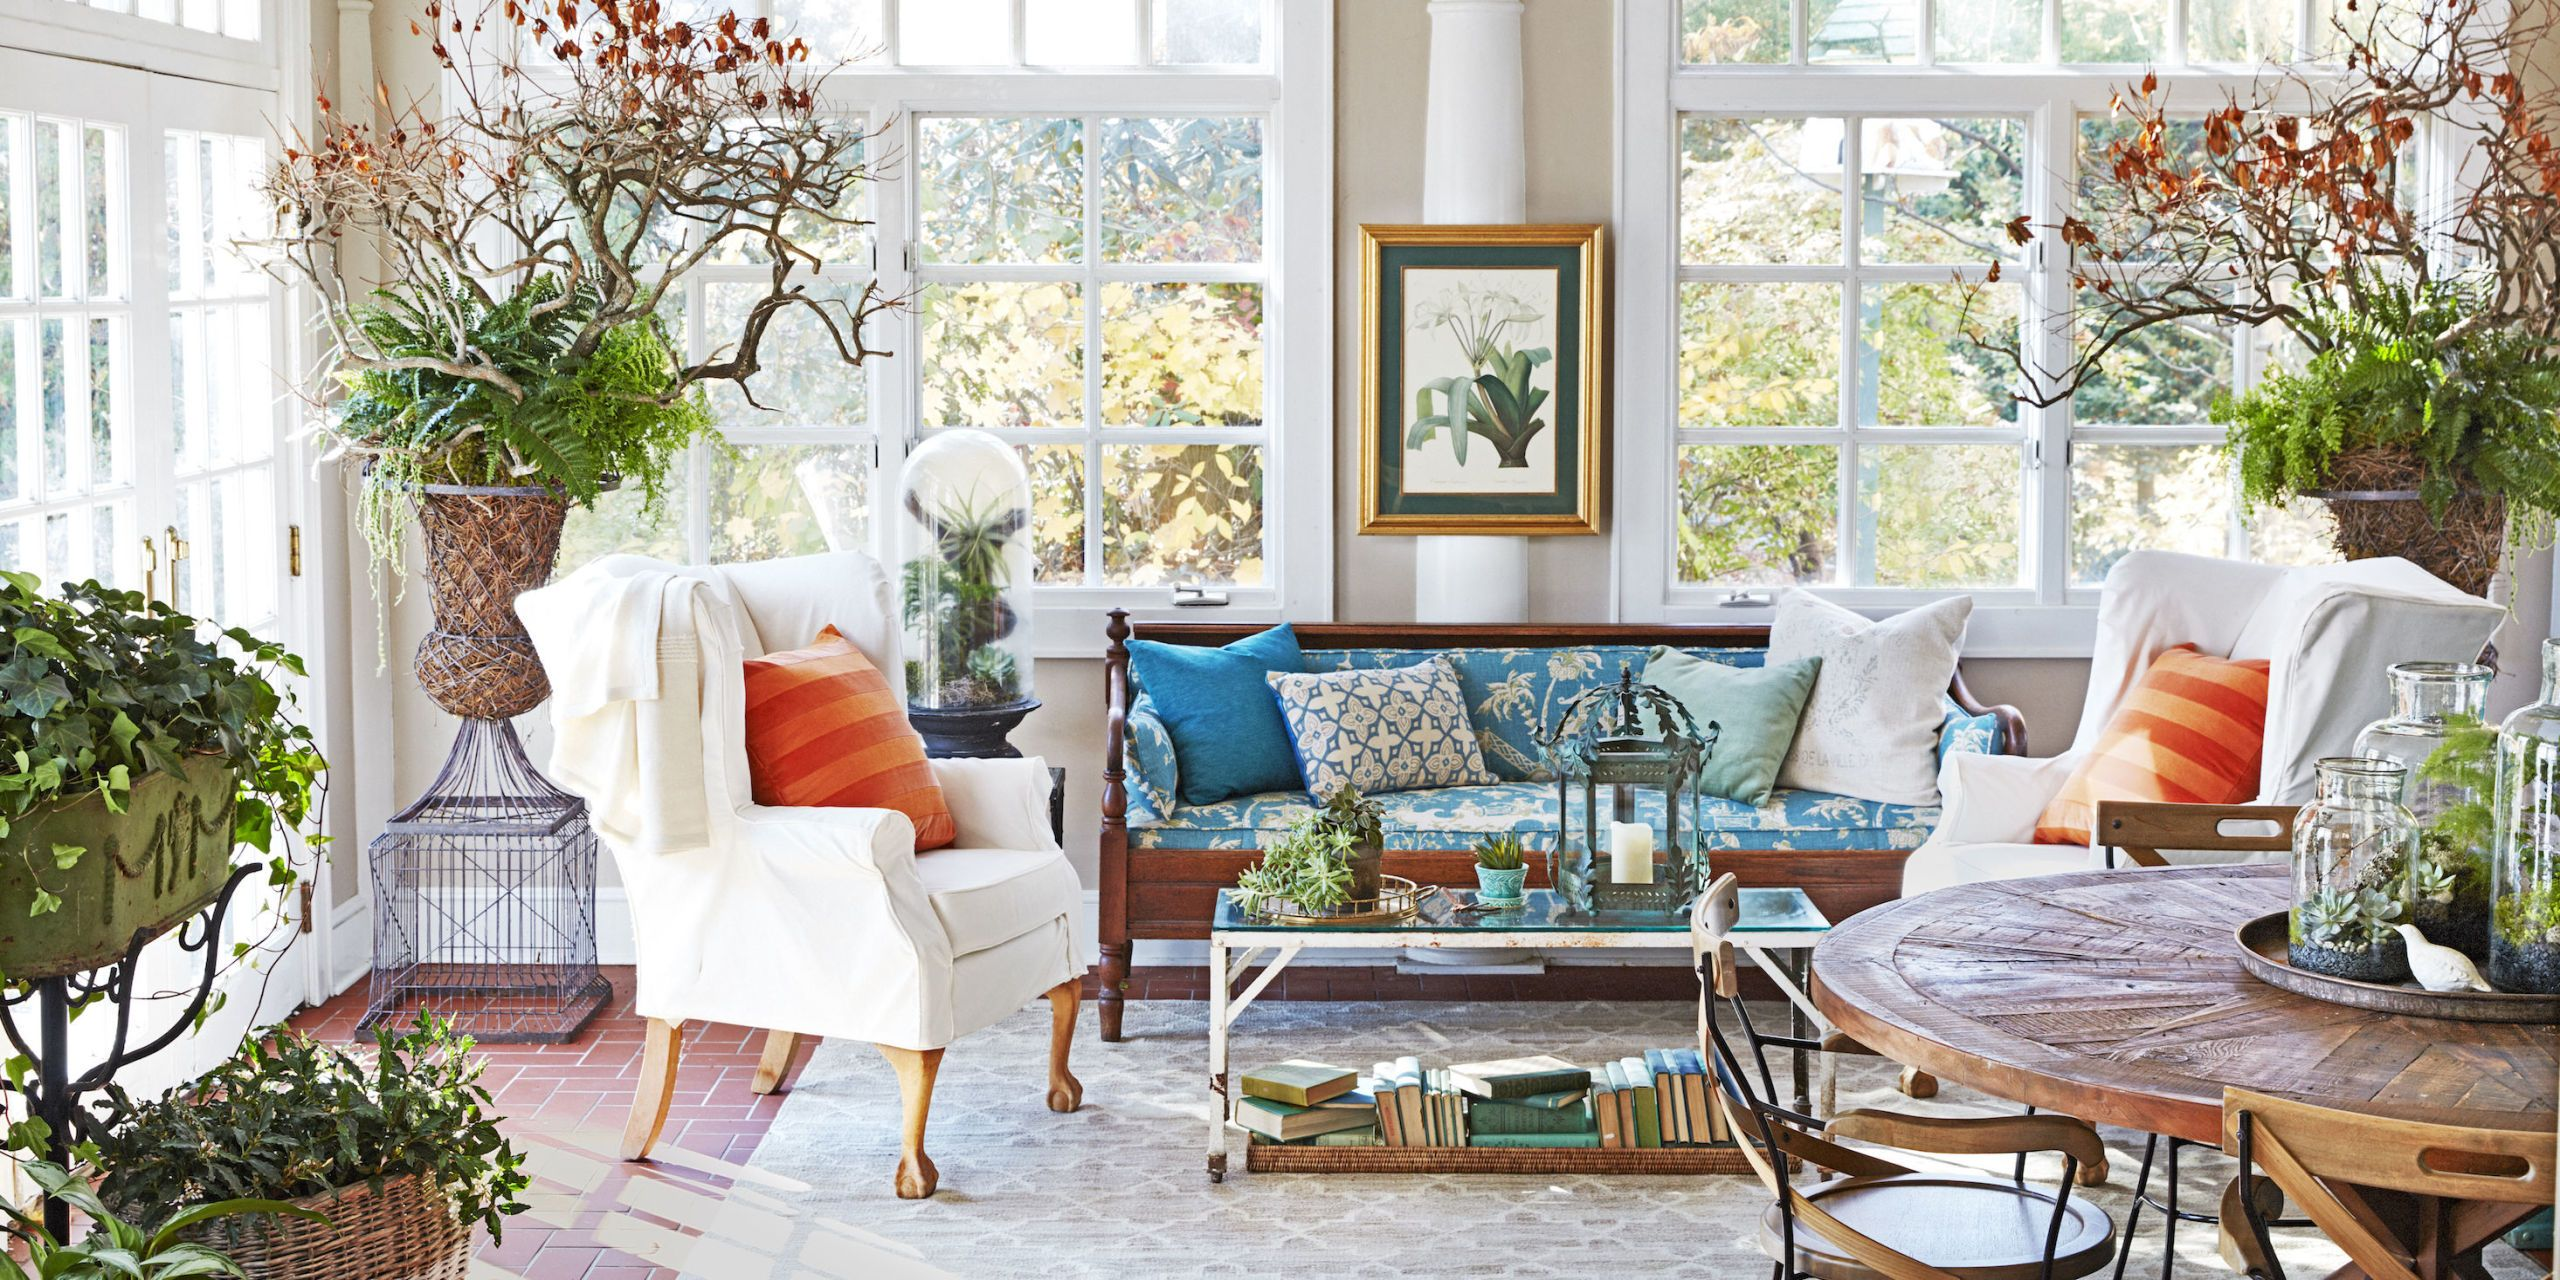 10 sunroom decorating ideas best designs for sun rooms rh goodhousekeeping com